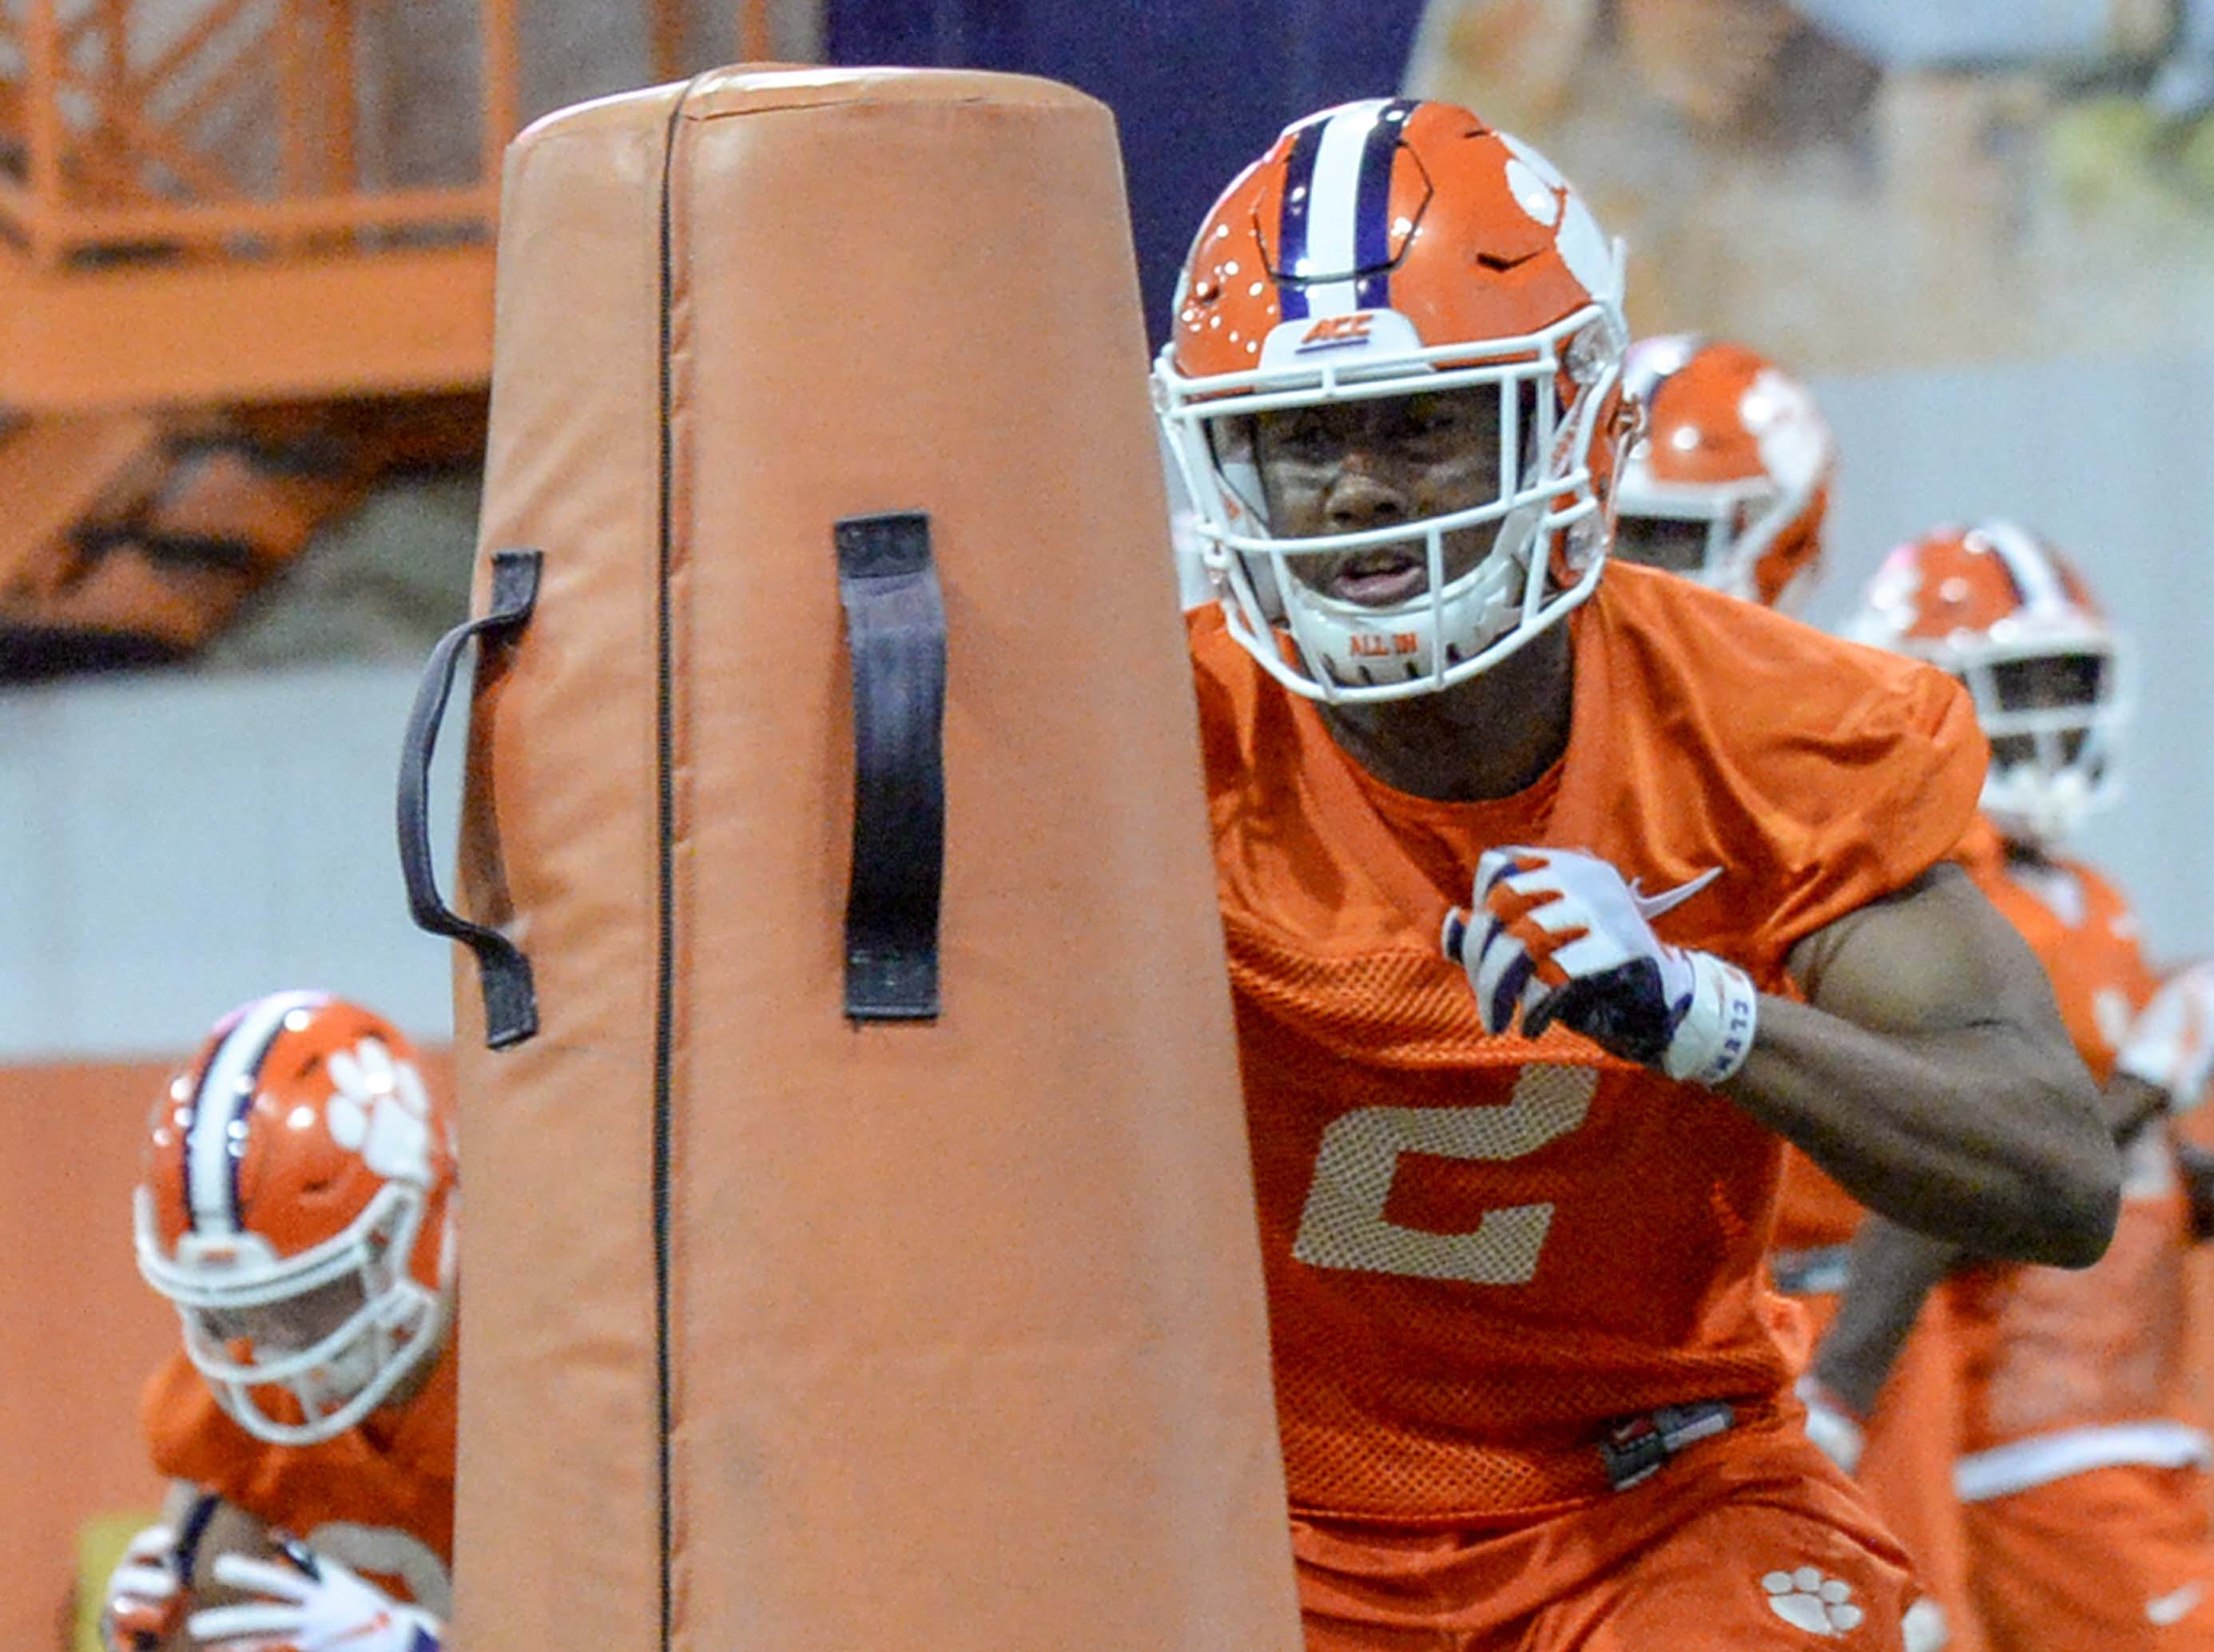 Clemson wide receiver Frank Ladson, Jr. (2) runs in a drill during practice at the Poe Indoor Facility in Clemson Friday.